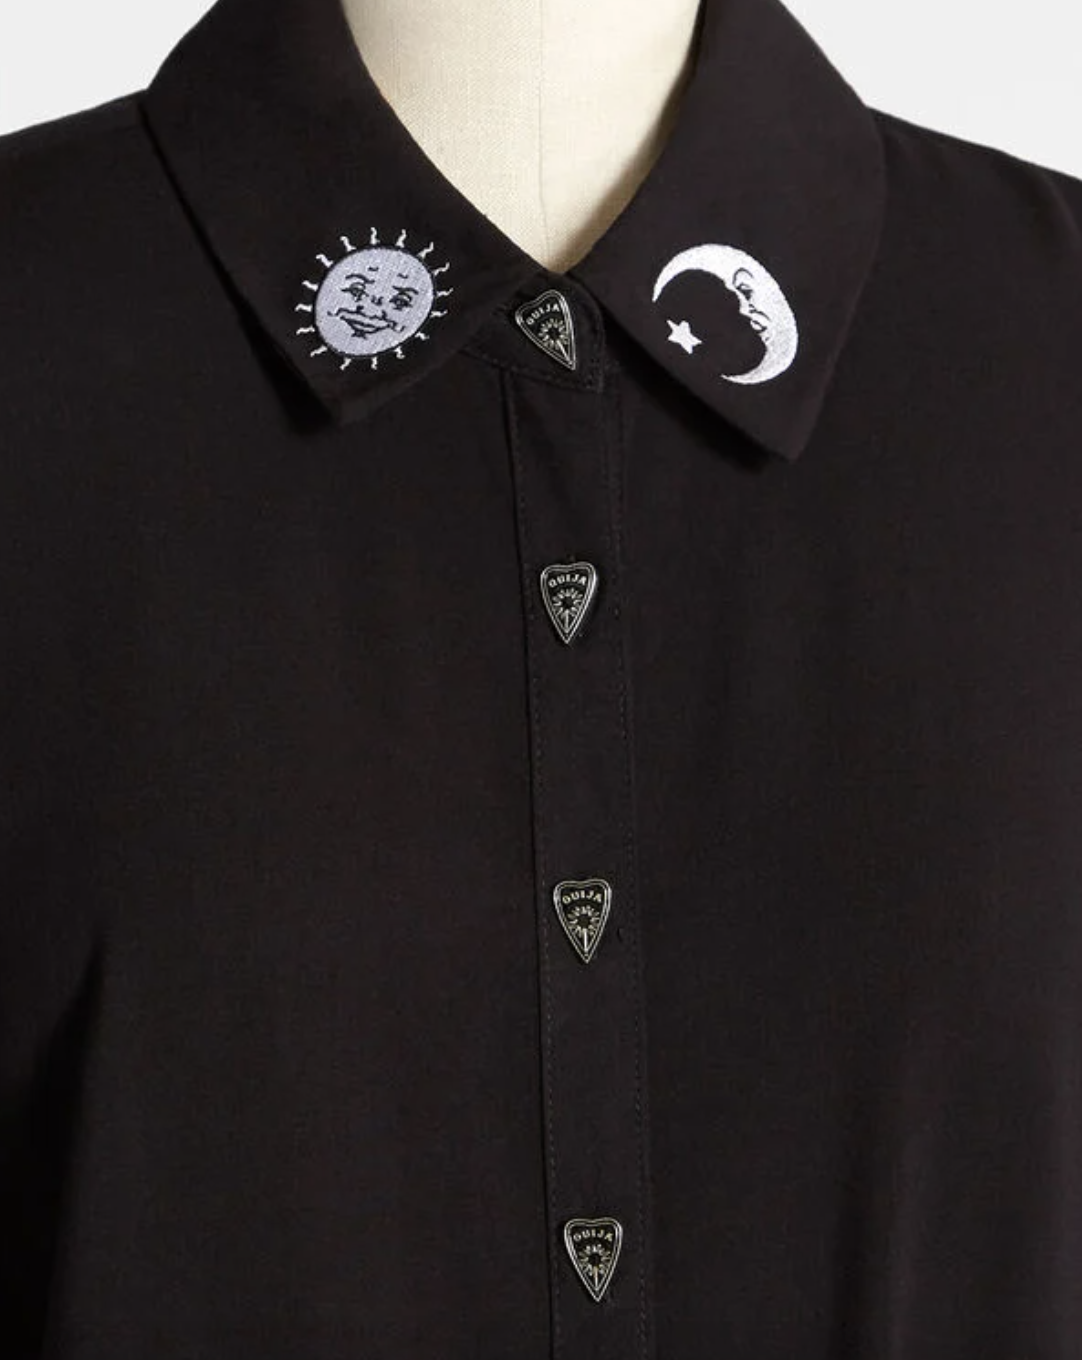 the black button-up with silver ouija buttons and white sun and moon motif on collar